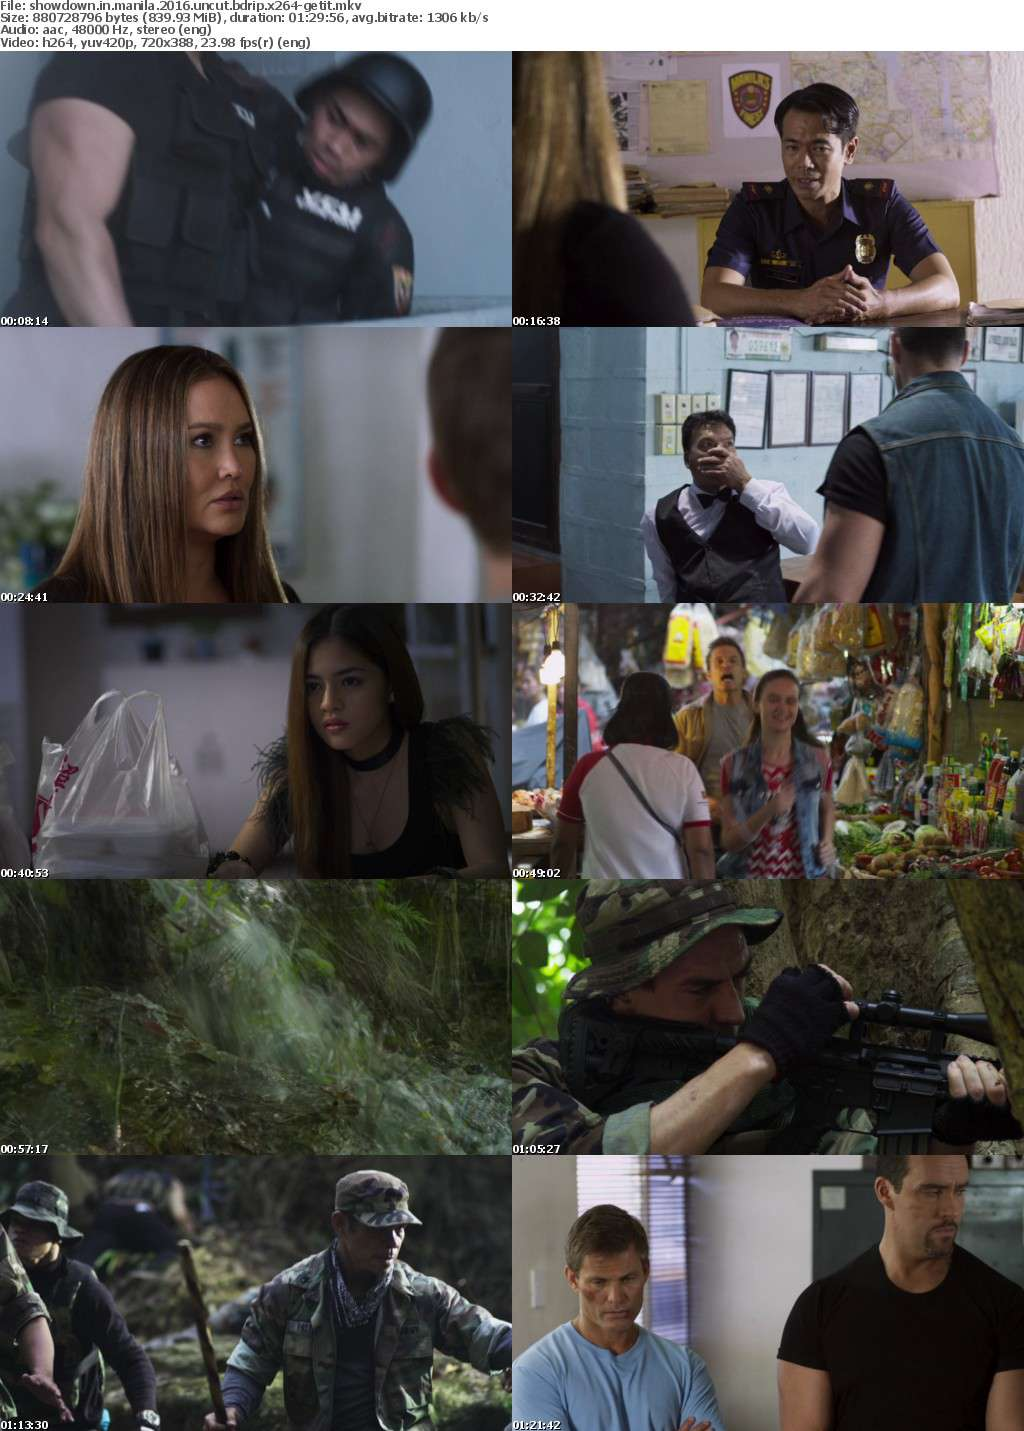 Showdown In Manila (2016) UNCUT BDRip x264-GETiT